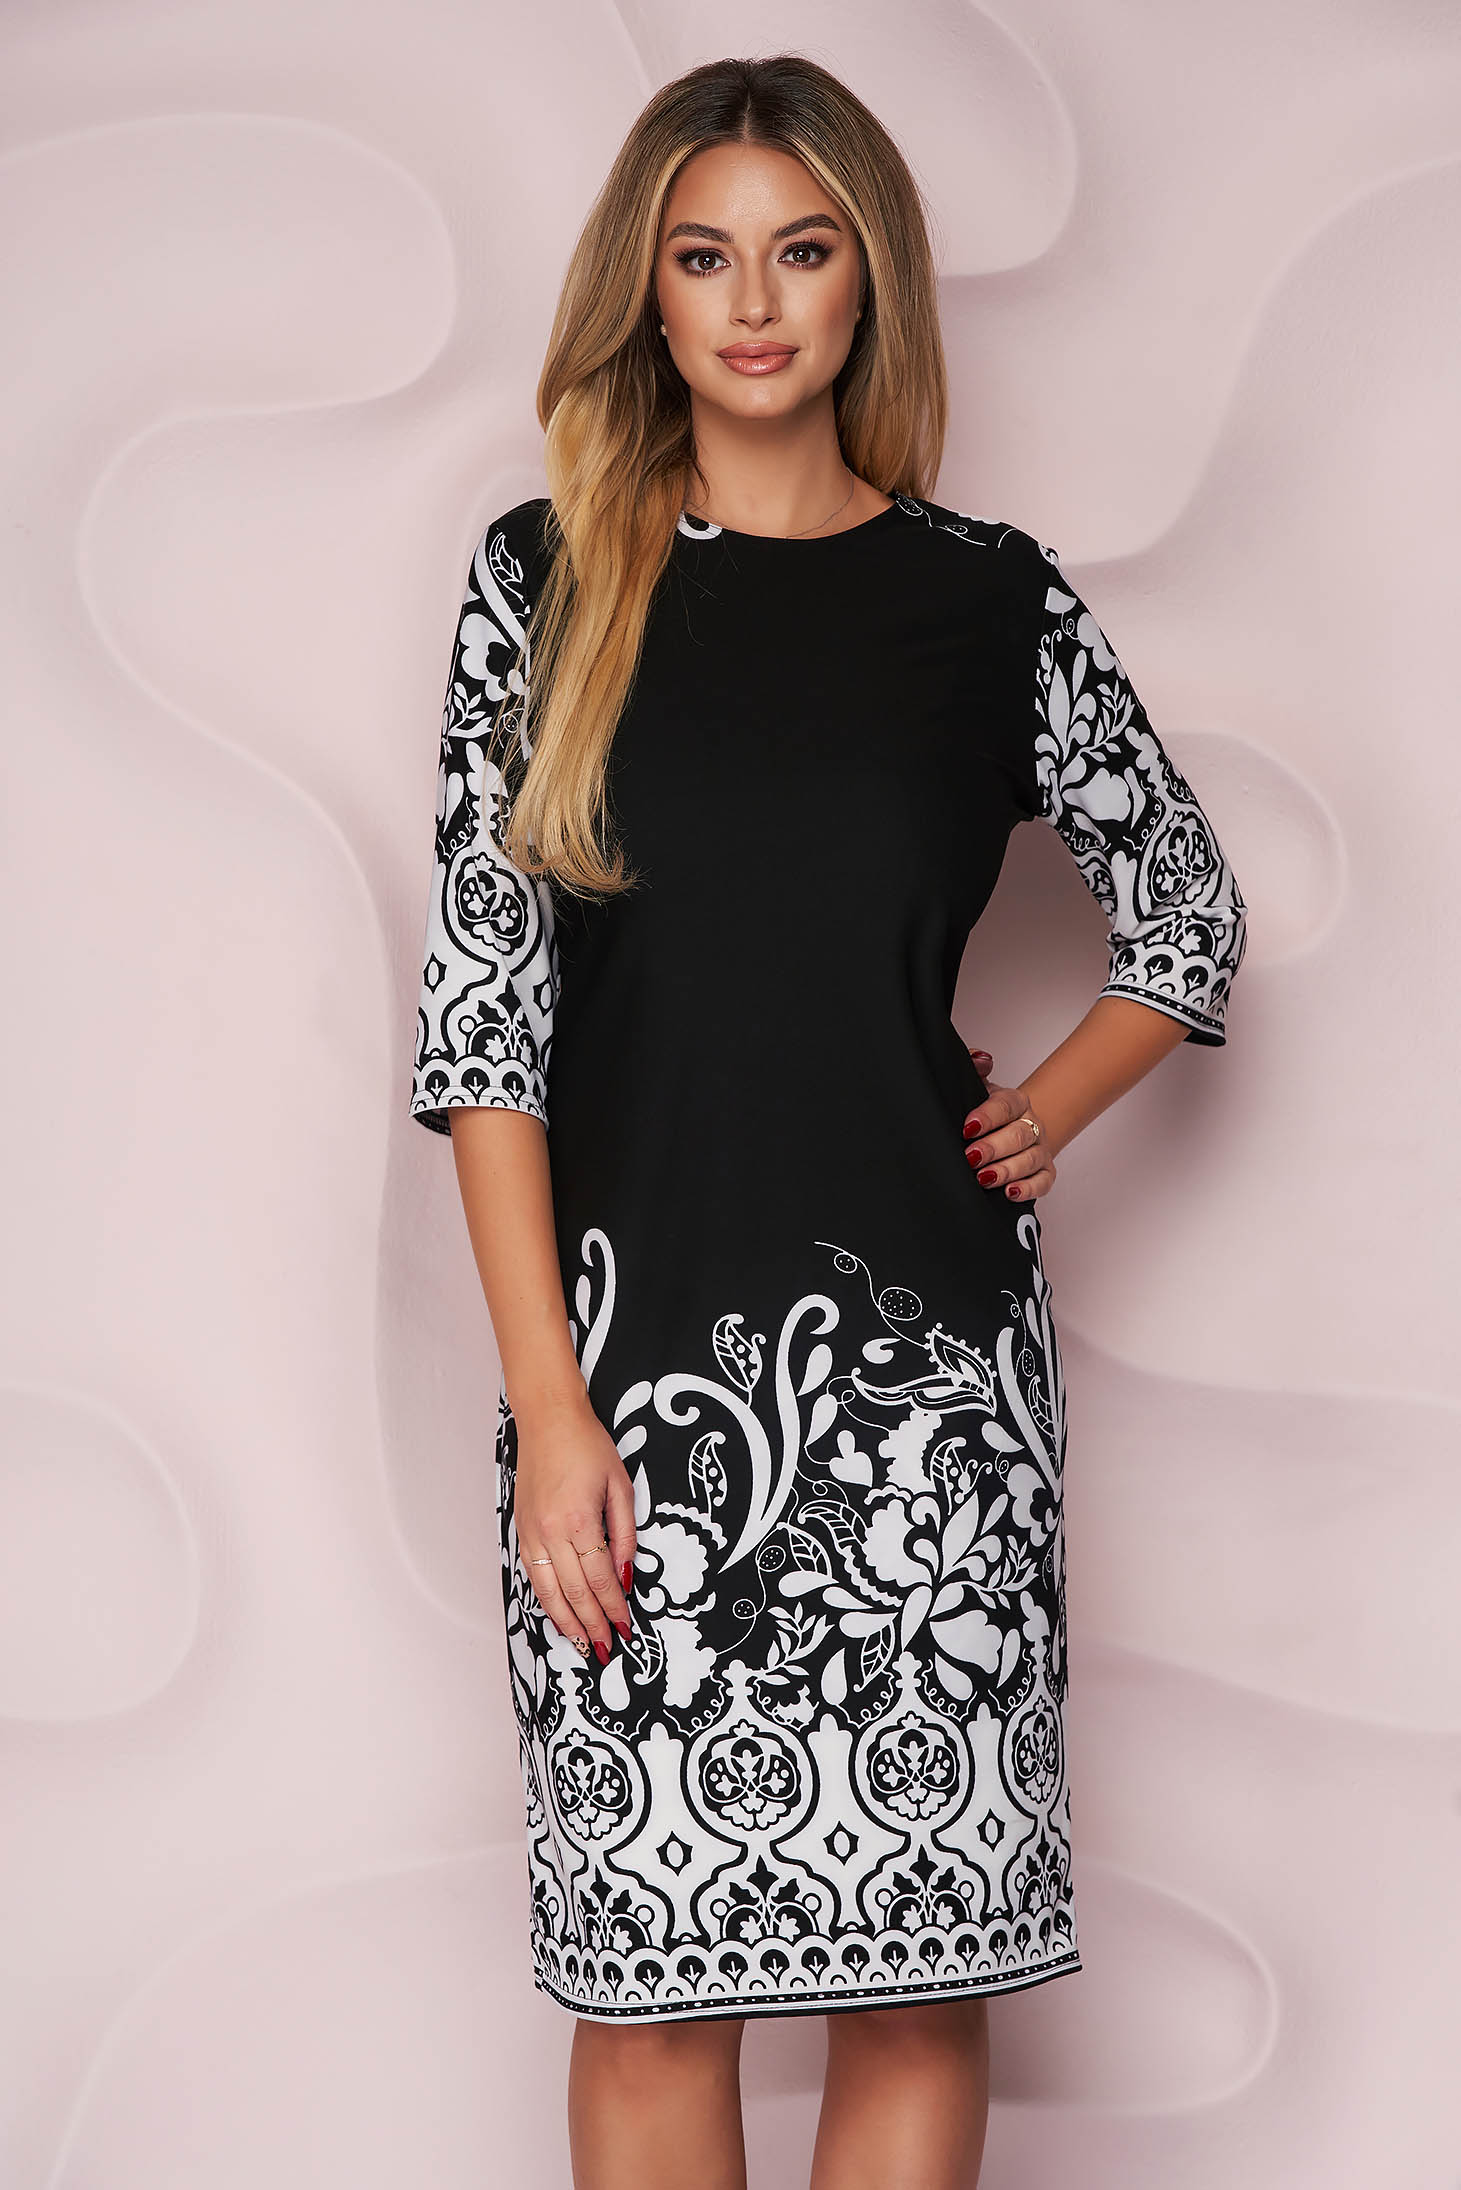 Black dress office straight midi slightly elastic fabric with graphic details